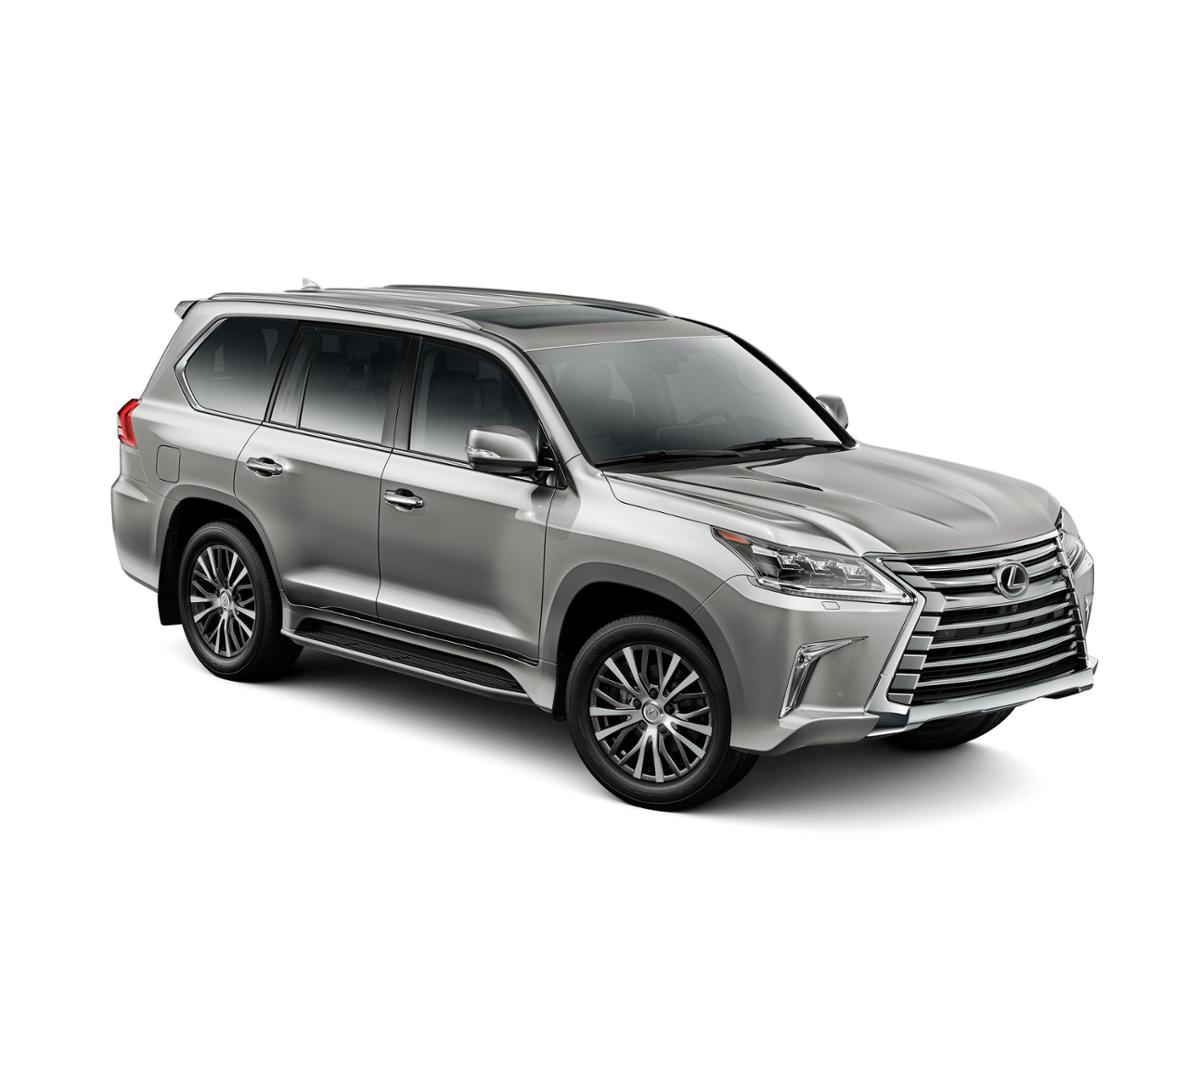 2019 Lexus LX 570 Vehicle Photo in Danvers, MA 01923